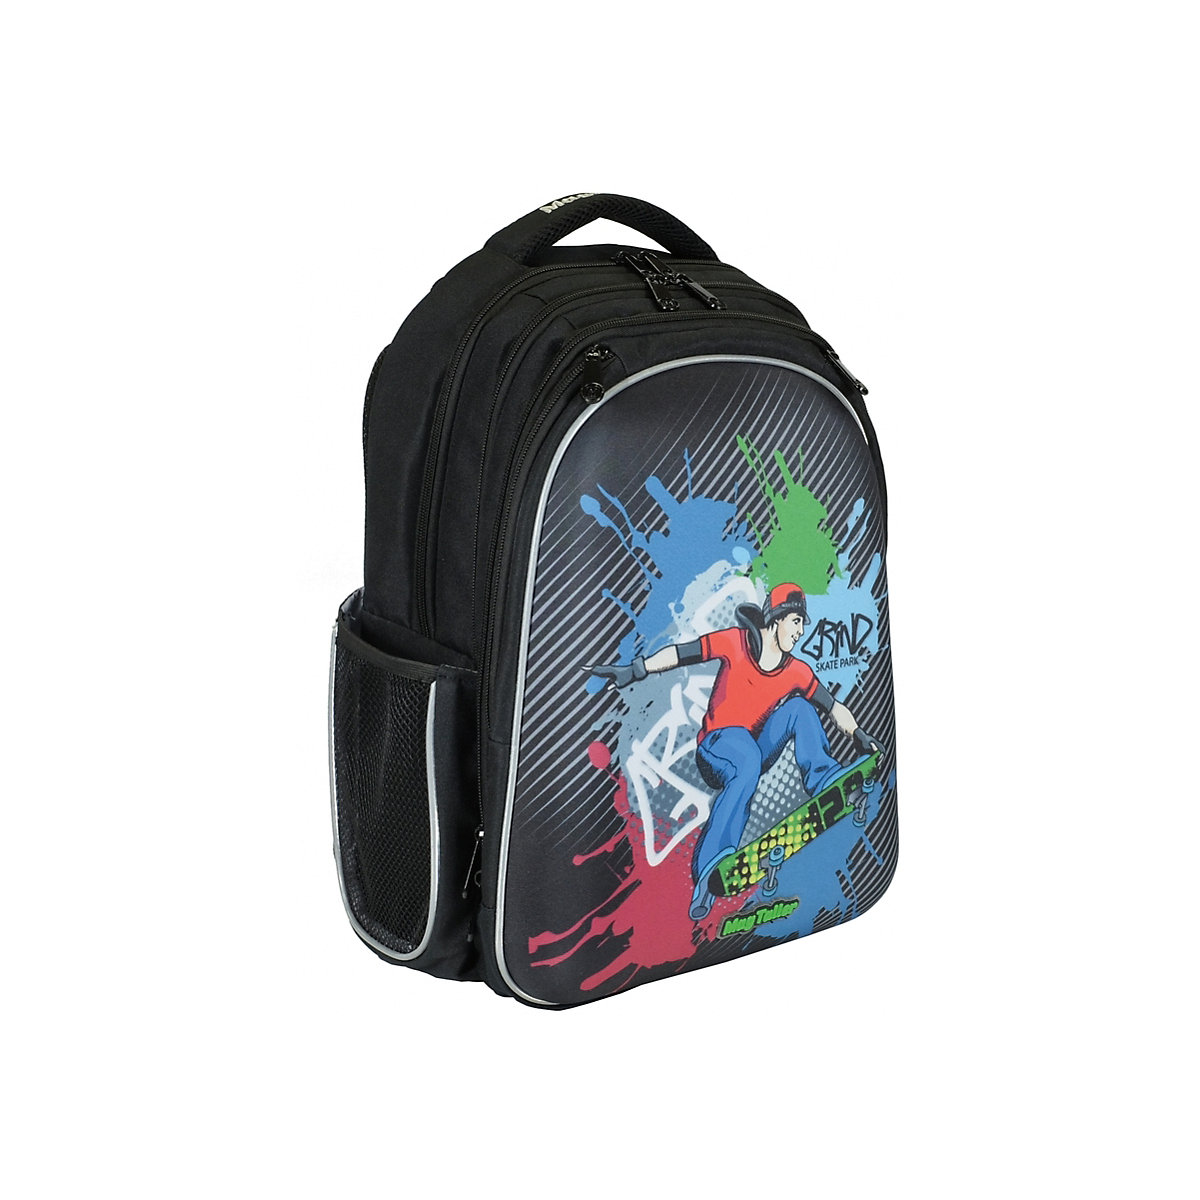 School Bags MAGTALLER 8316028 Schoolbag Backpack Orthopedic Bag For Boy And Girl Animals Flowers